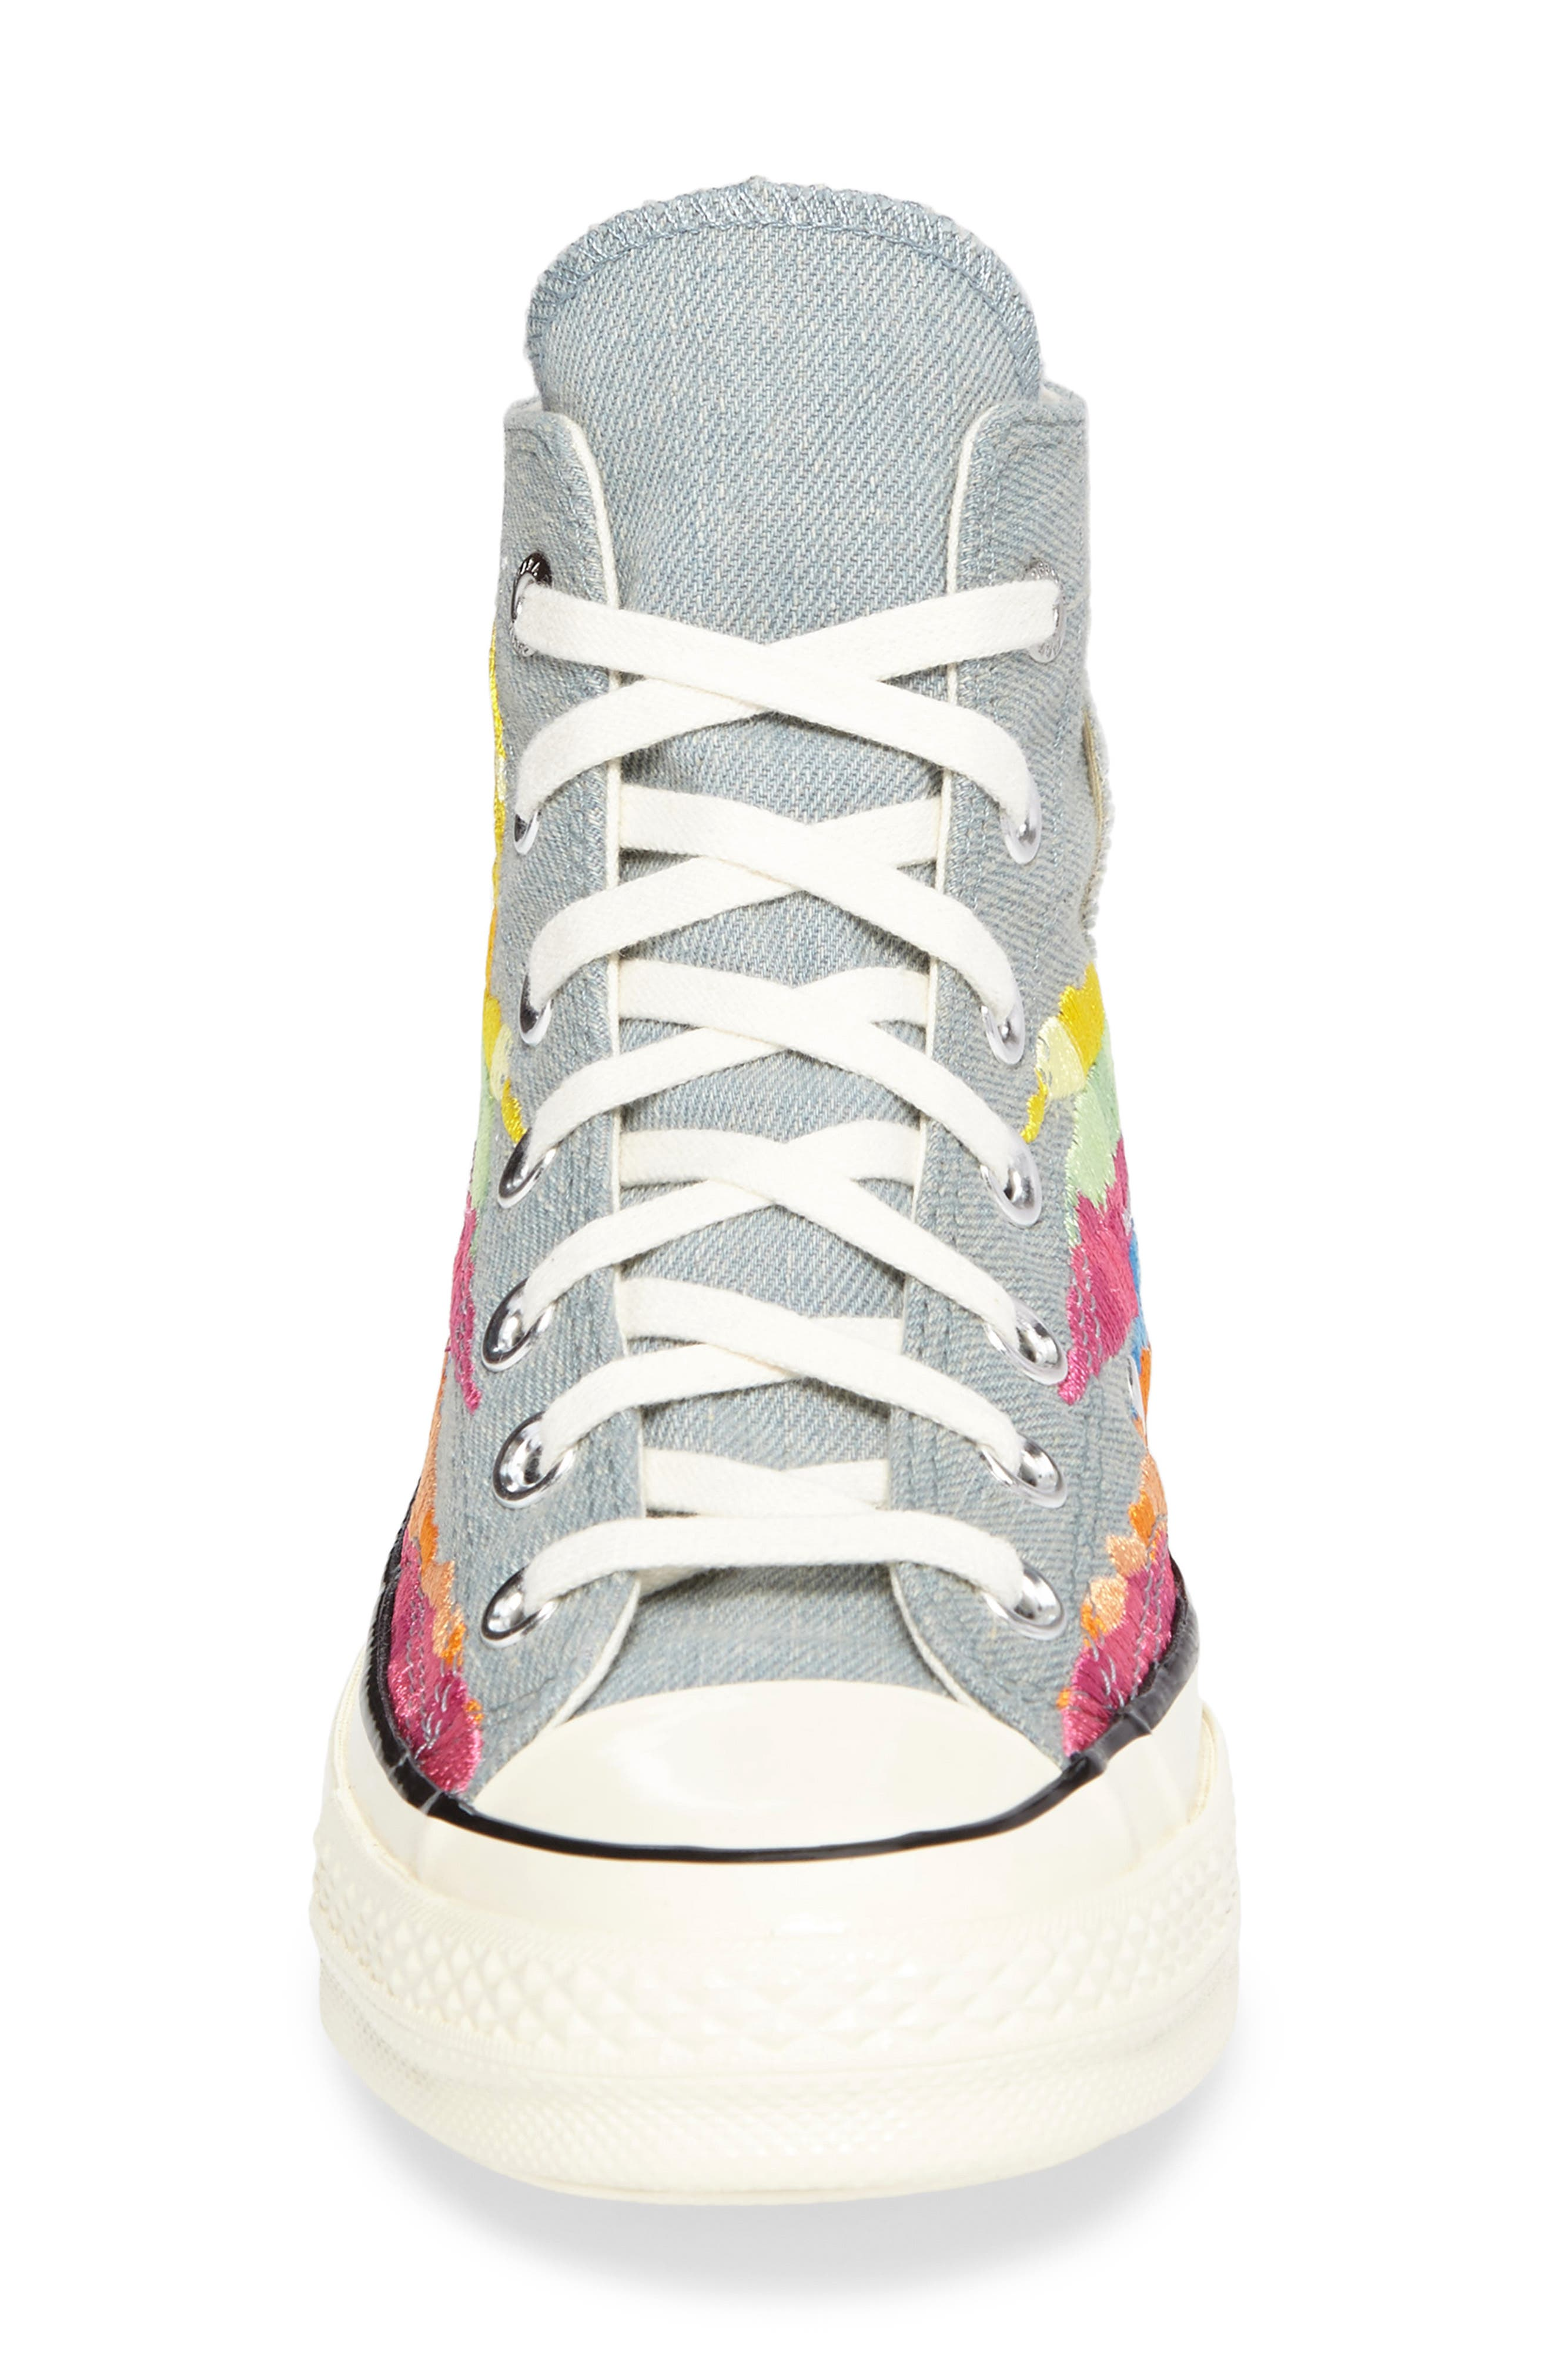 x Mara Hoffman All Star<sup>®</sup> Embroidered High Top Sneaker,                             Alternate thumbnail 8, color,